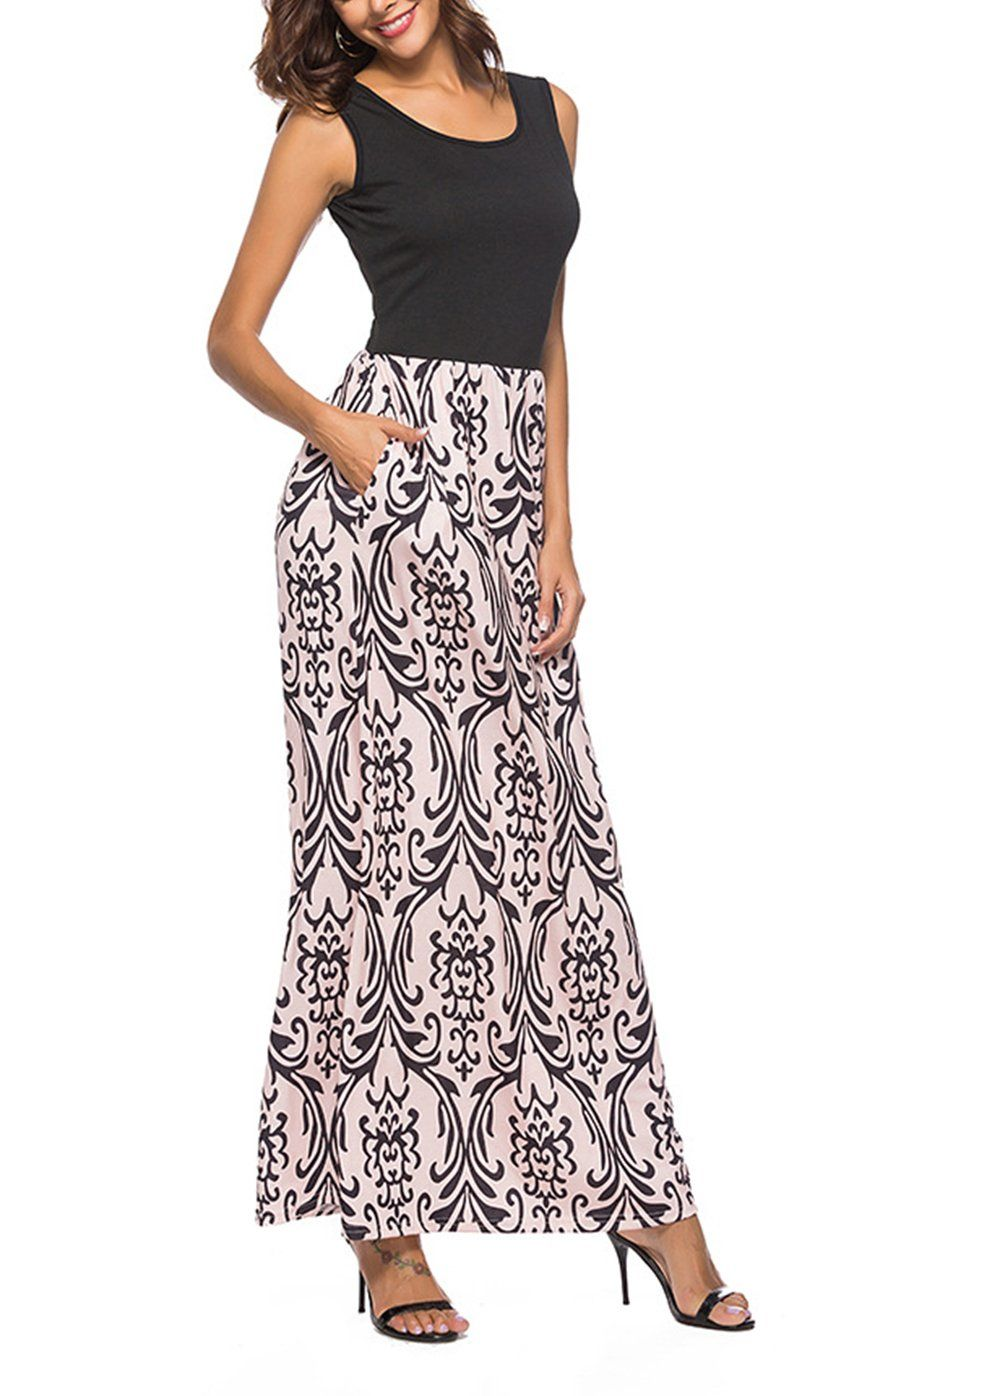 feaead98c07 Women Maternity Clothes - FREEMODE Womens Summer Sleeveless Maxi ...